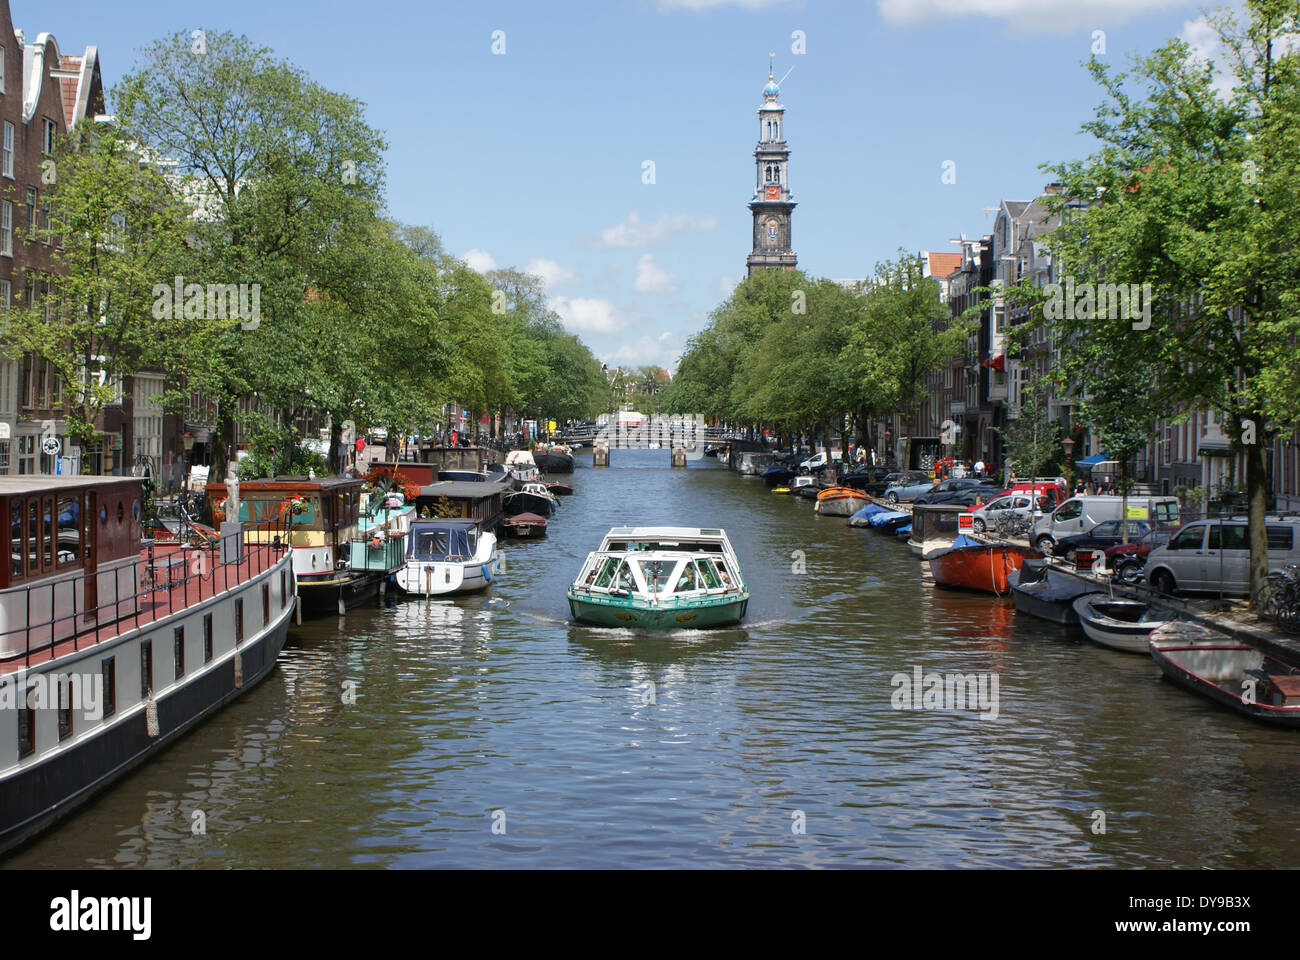 Prinsengracht in the old town of Amsterdam, Netherlands, Europe - Stock Image